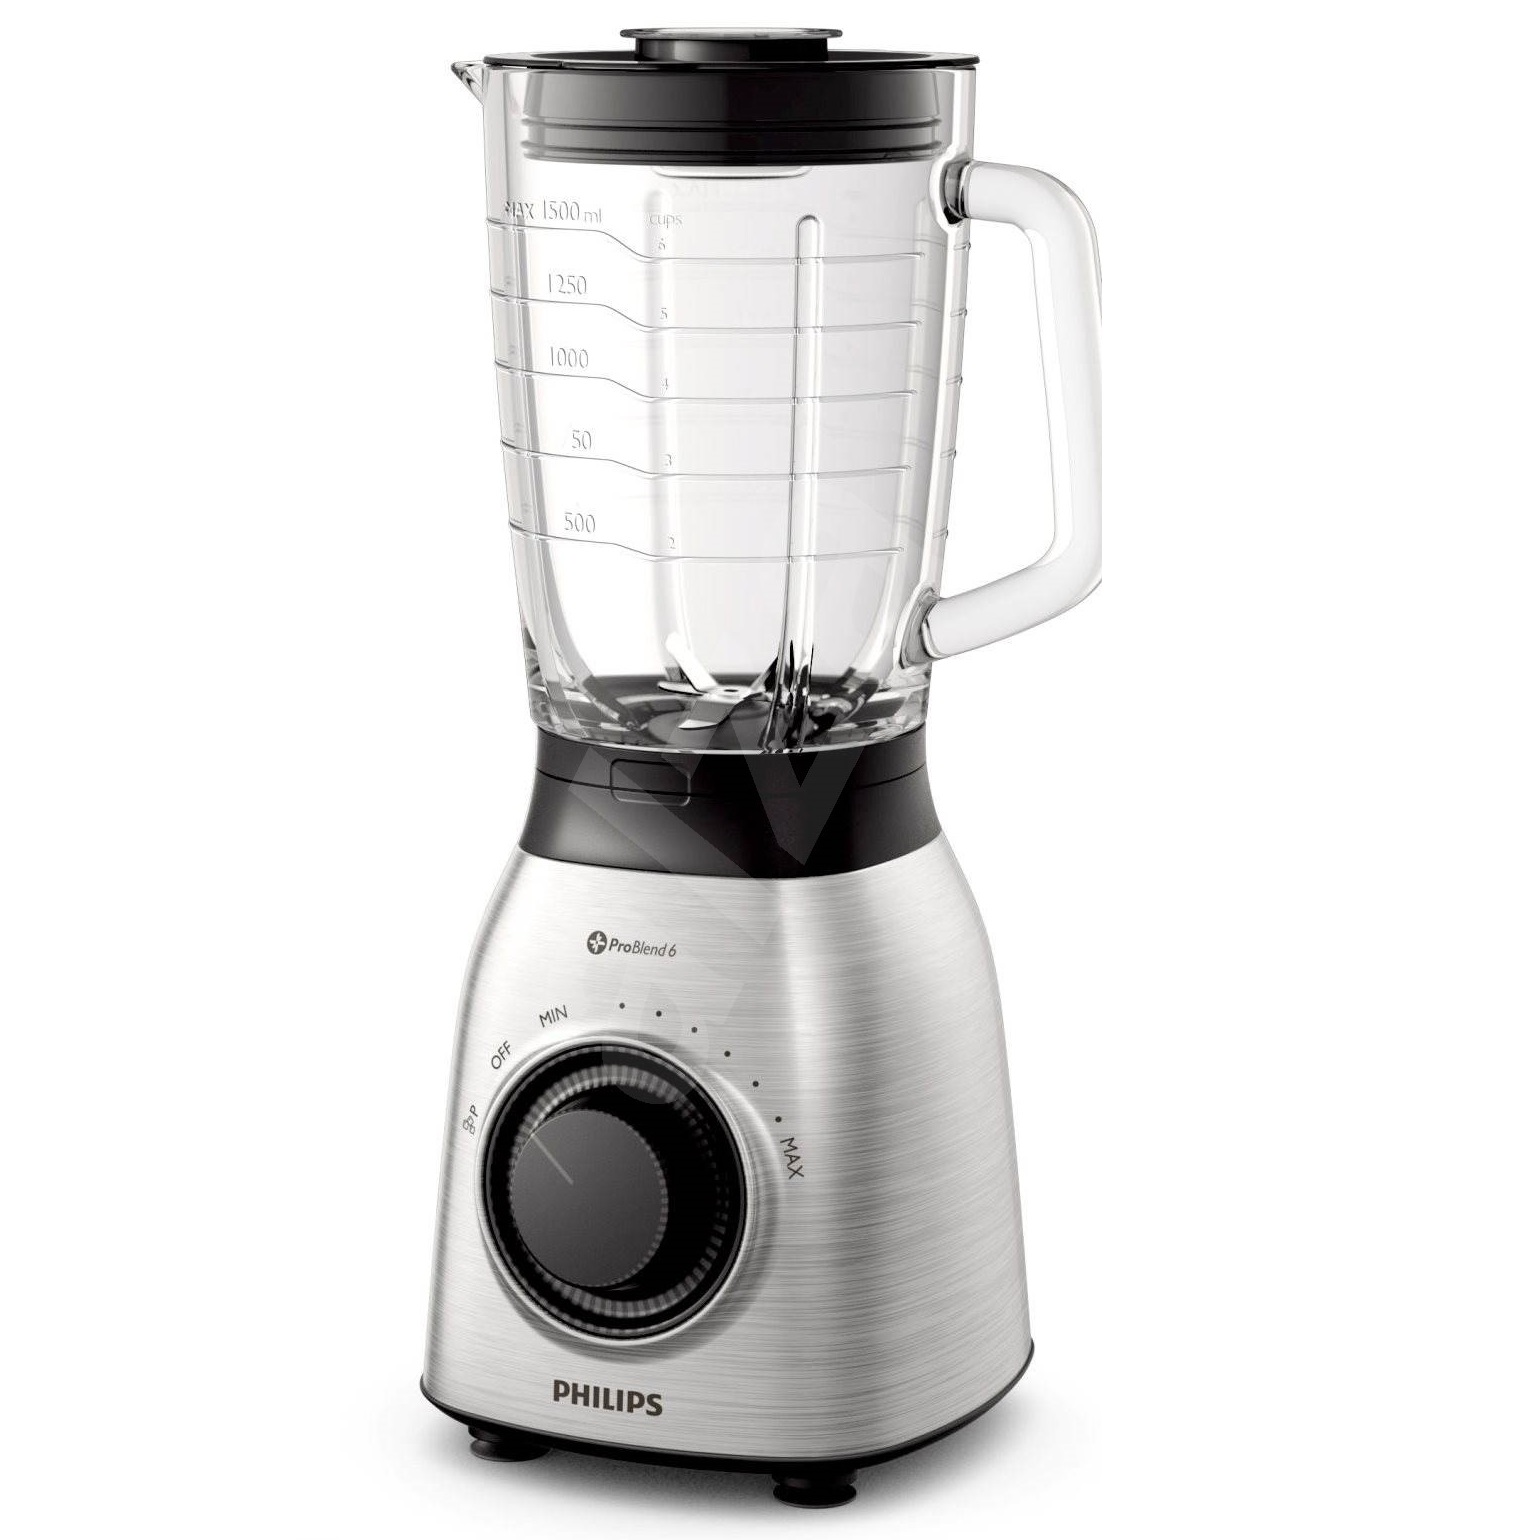 Philips blender 3555/00 - Inelektronik